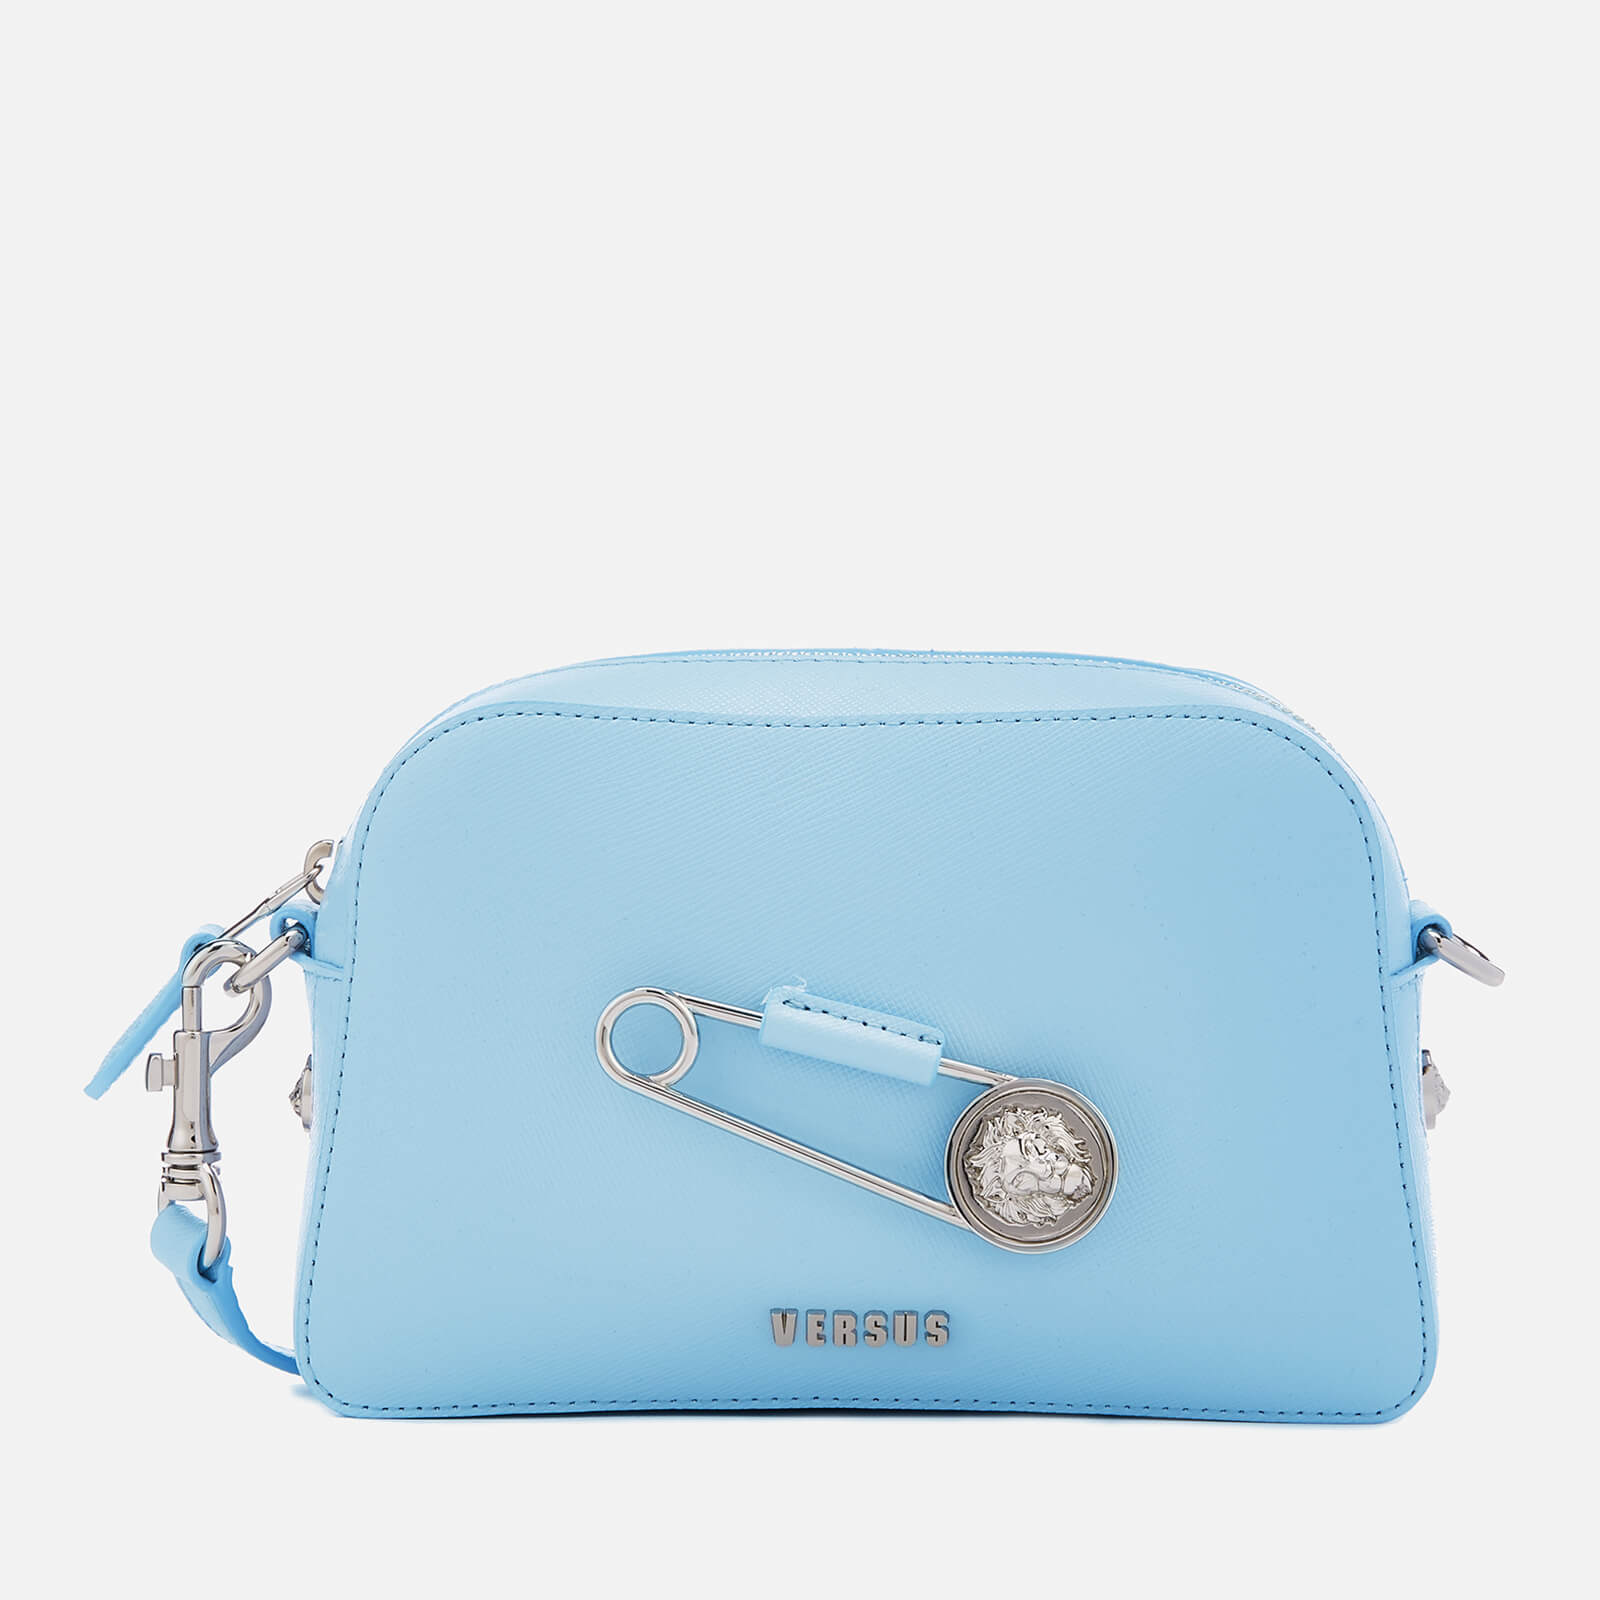 ecc5178ac0 Versus Versace Women s Safety Pin Small Cross Body Bag - Light Blue - Free  UK Delivery over £50